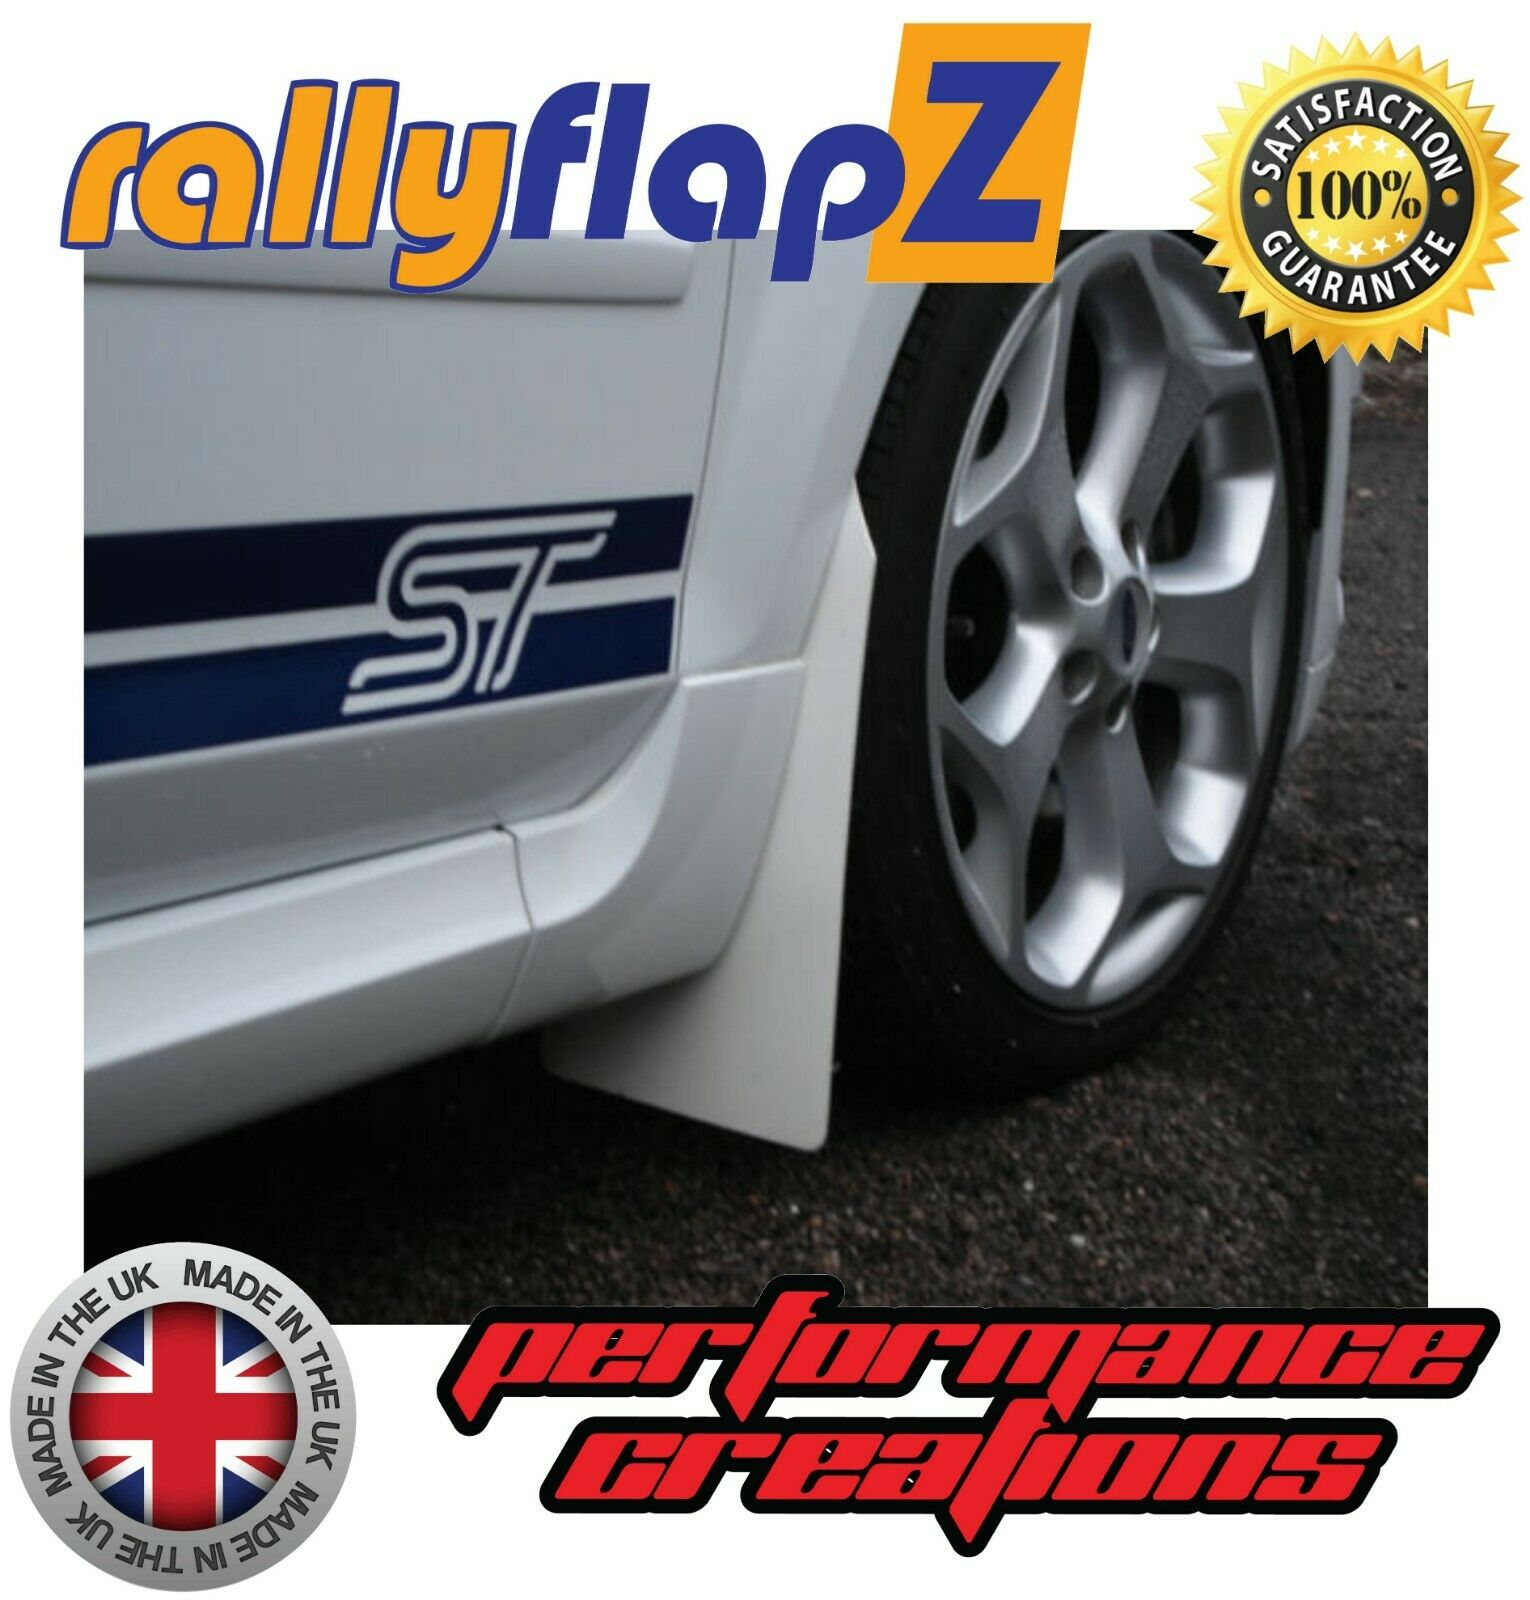 car parts bolton html with Rallyflapz Ford Focus St Mk2 St225 04 11 Mudflaps 181810491546 on New Turbo Gt1646V 751851 Chra Repair Replacement Kit 381711733947 additionally VW T25 ELECTRIC POWER STEERING CONVERSION KIT T3 161035917124 together with 2006 2010 Vauxhall Astra Corsa  bo 13 152768723729 further Vr1 additionally RallyflapZ FORD FOCUS ST Mk2 ST225 04 11 Mudflaps 181810491546.